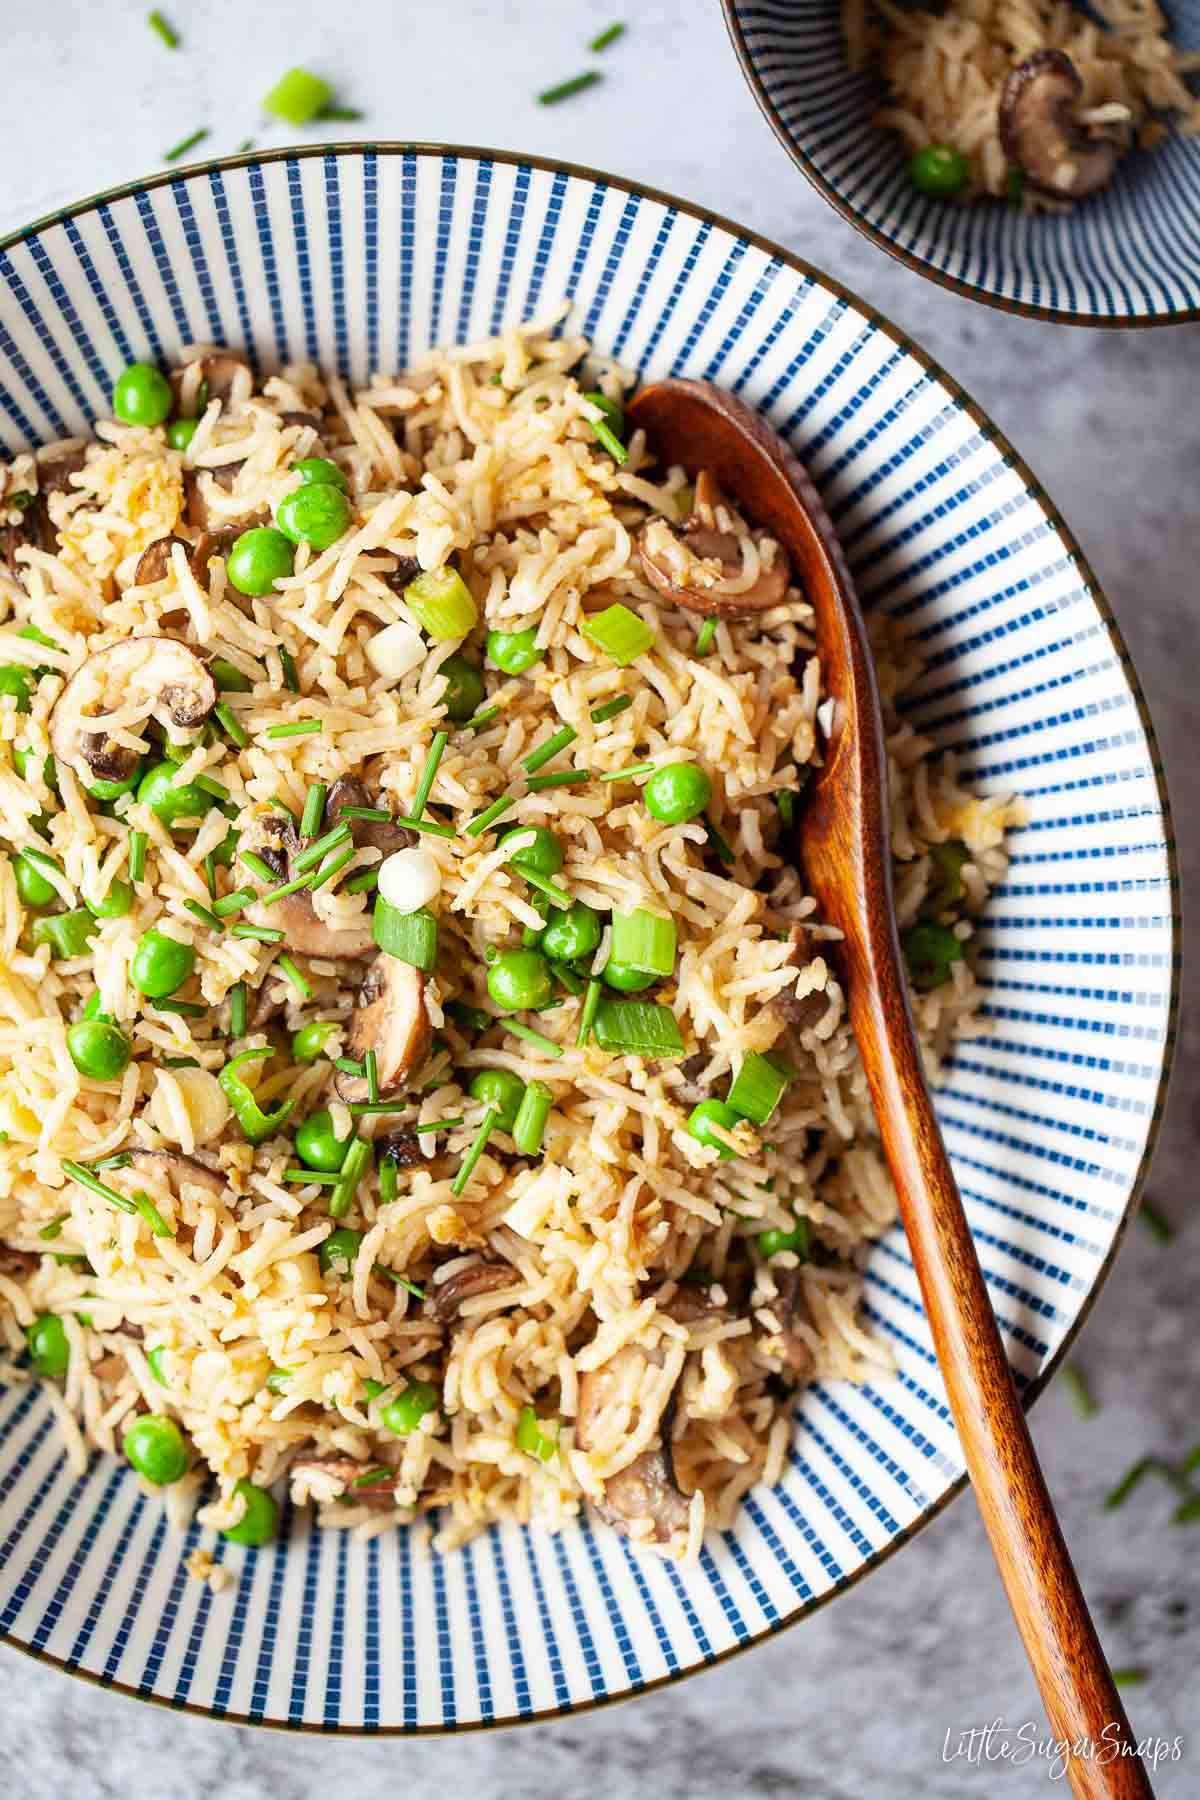 A bowl of fried rice with mushrooms with a serving spoon in it